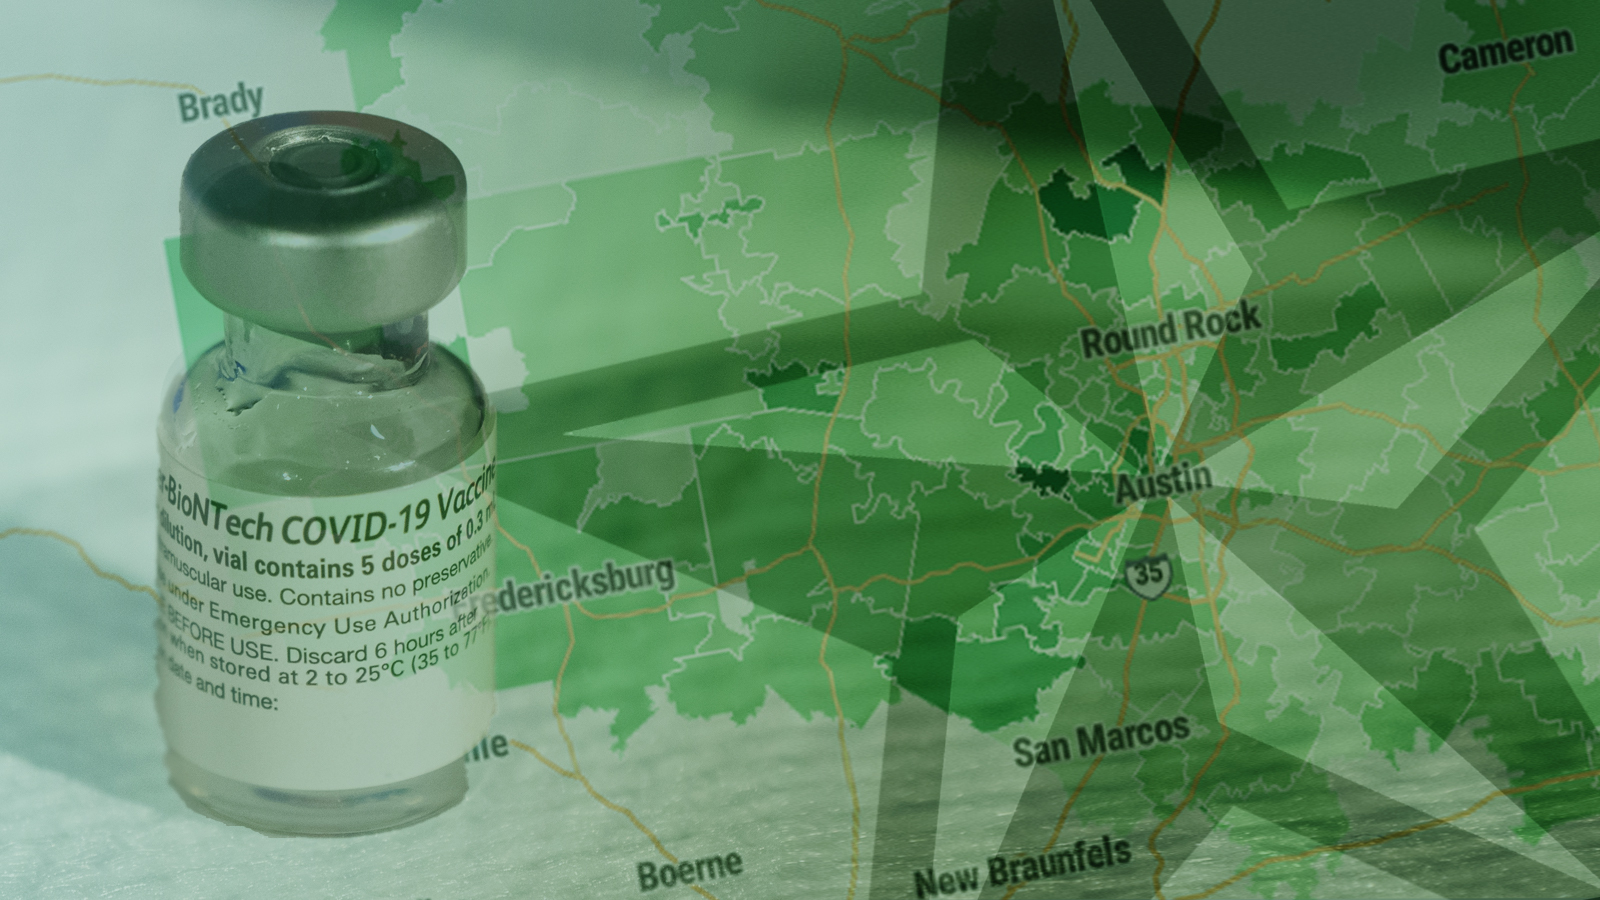 KXAN is tracking COVID-19 vaccination rates across Texas, including a search by zip code.